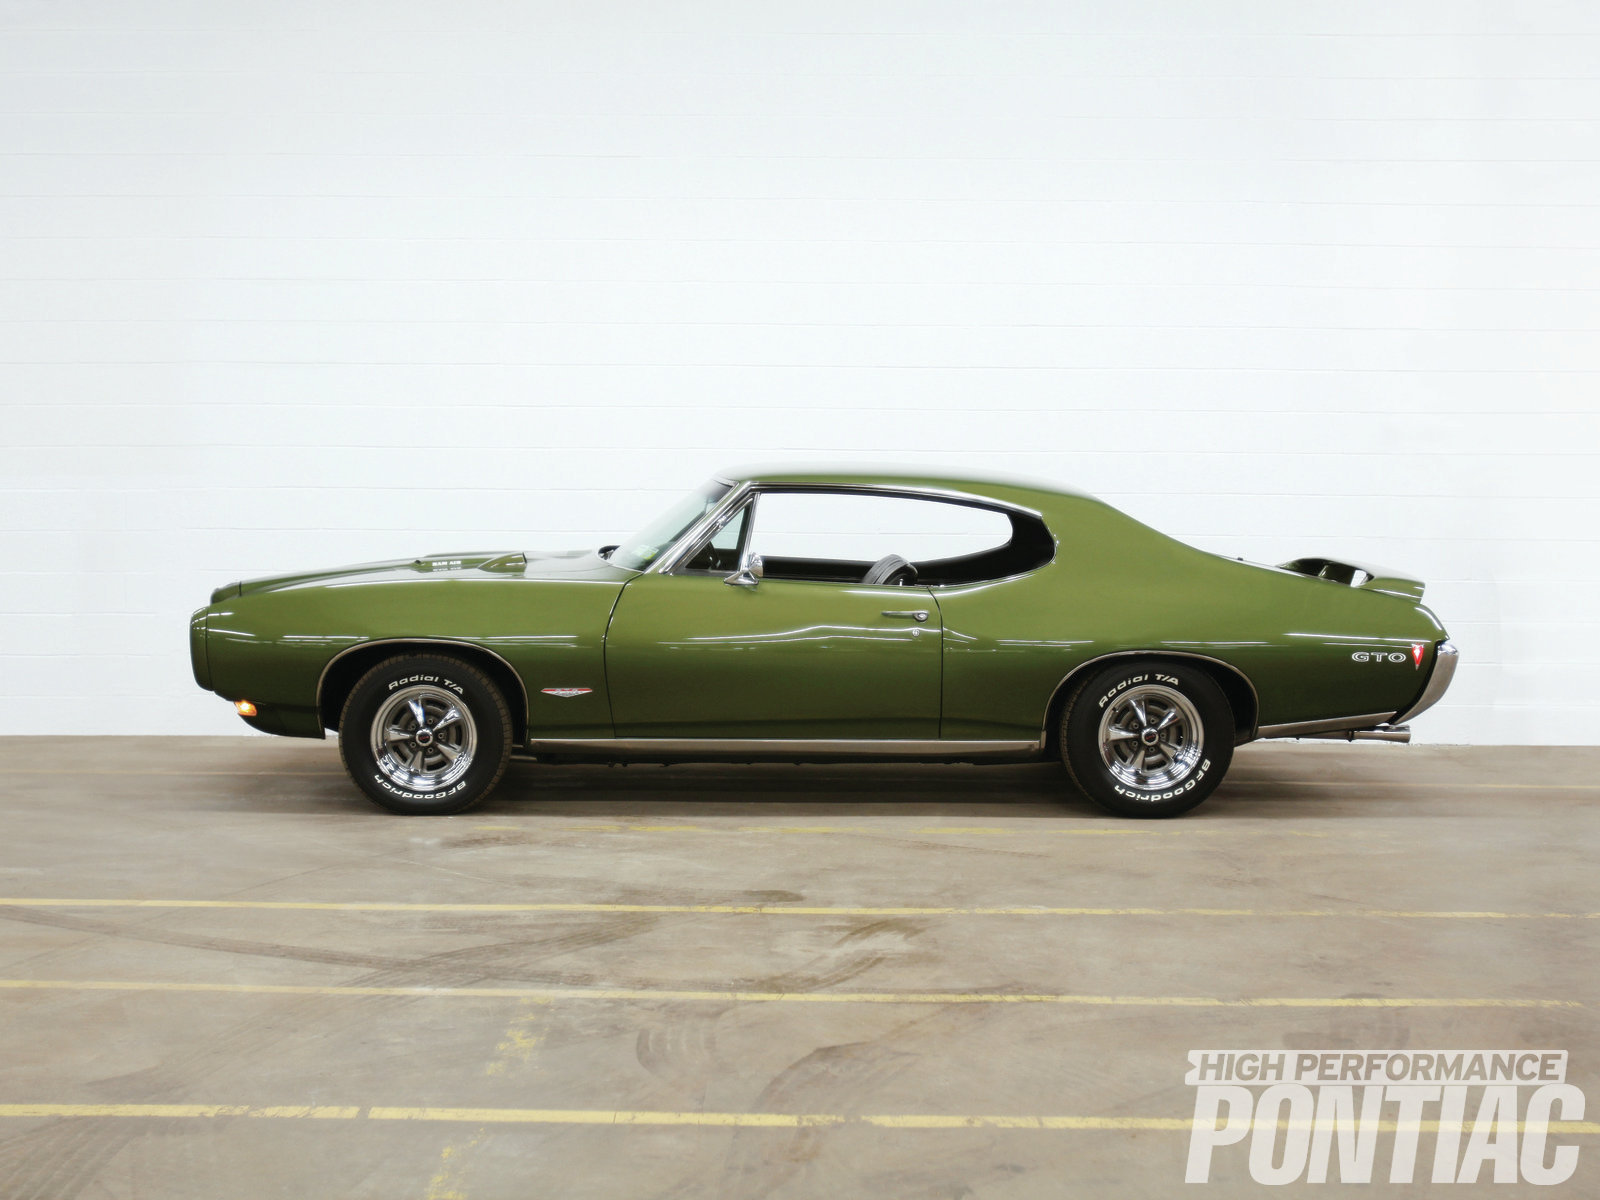 Verdoro Green has emerged as the signature color for the entire '68 model year, as over 30-percent of all Pontiacs were built in this hue.